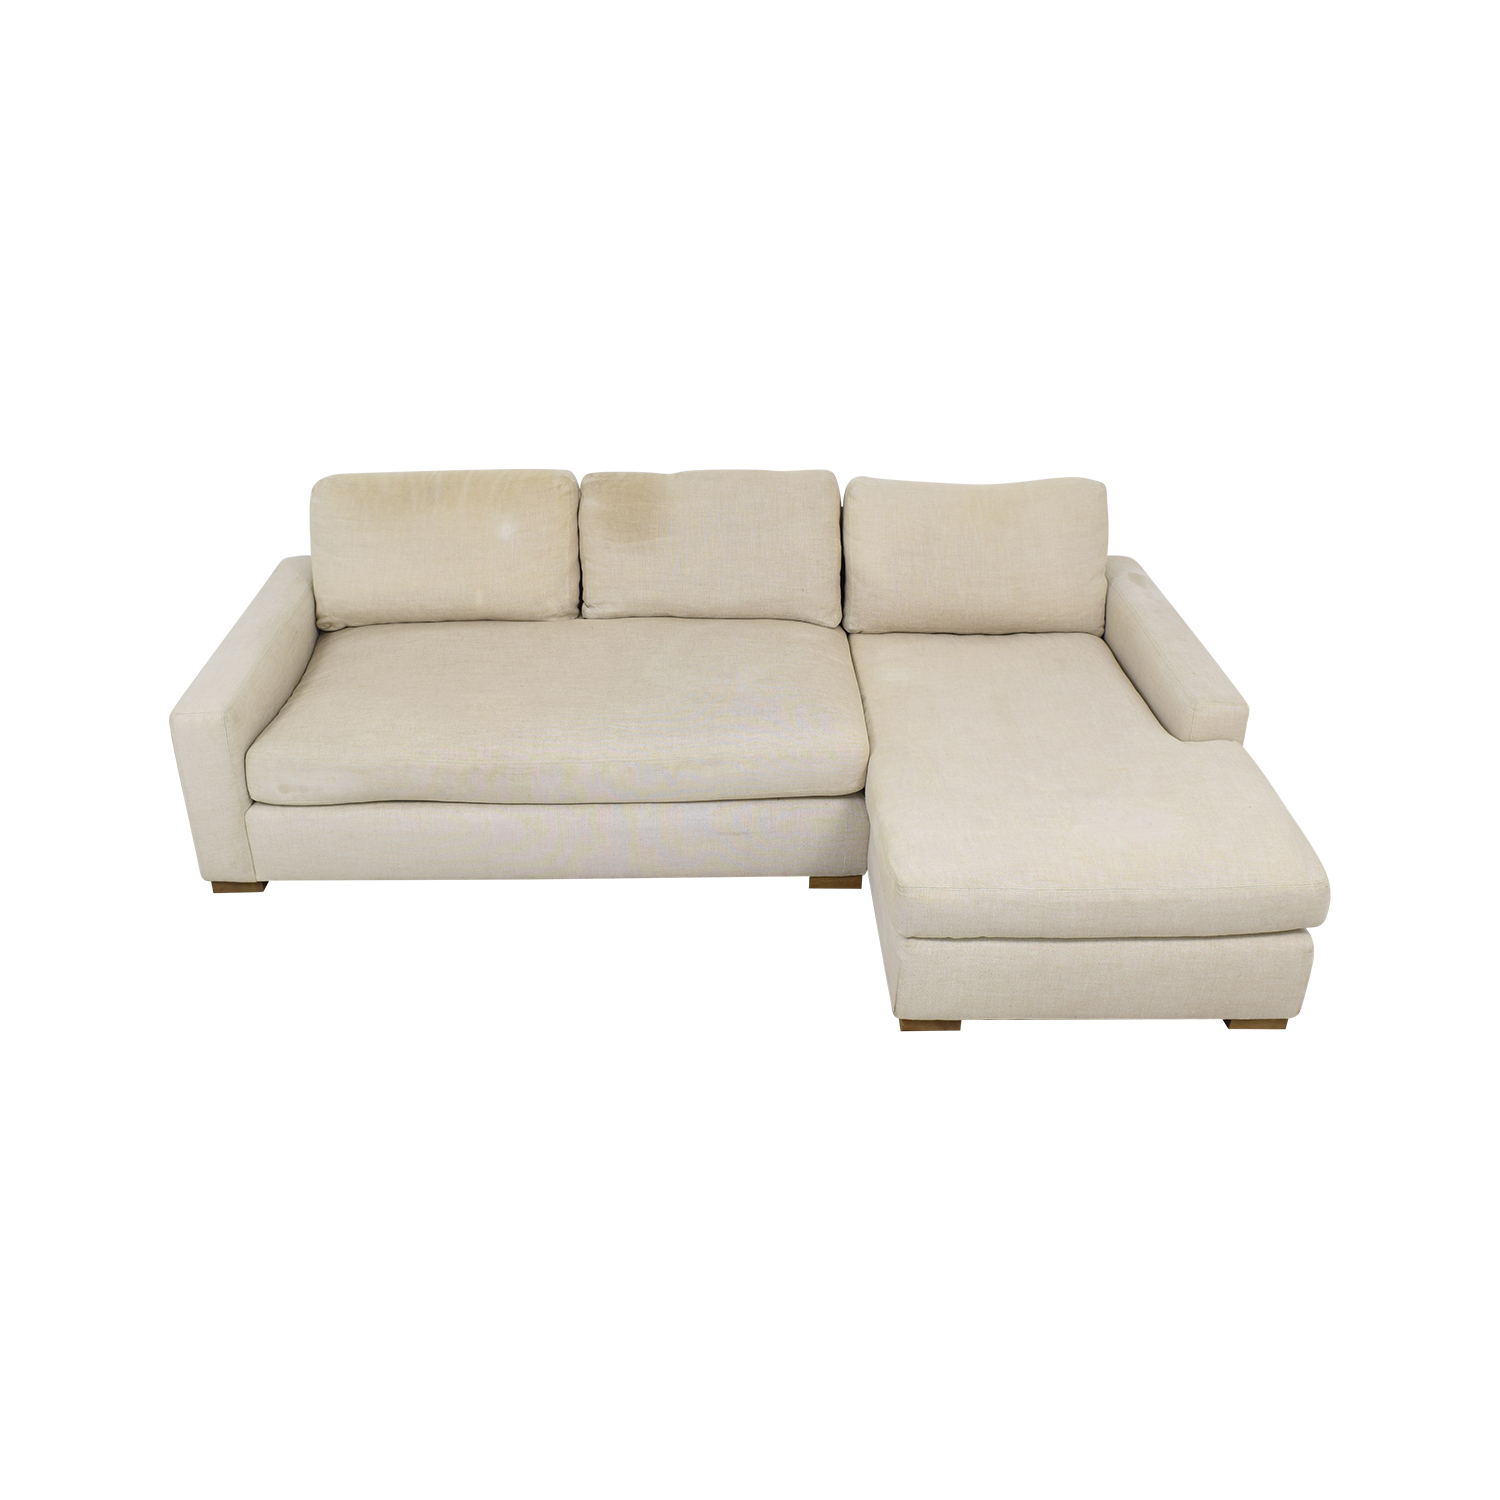 Restoration Hardware Restoration Hardware Maxwell Chaise Sectional Sofa dimensions